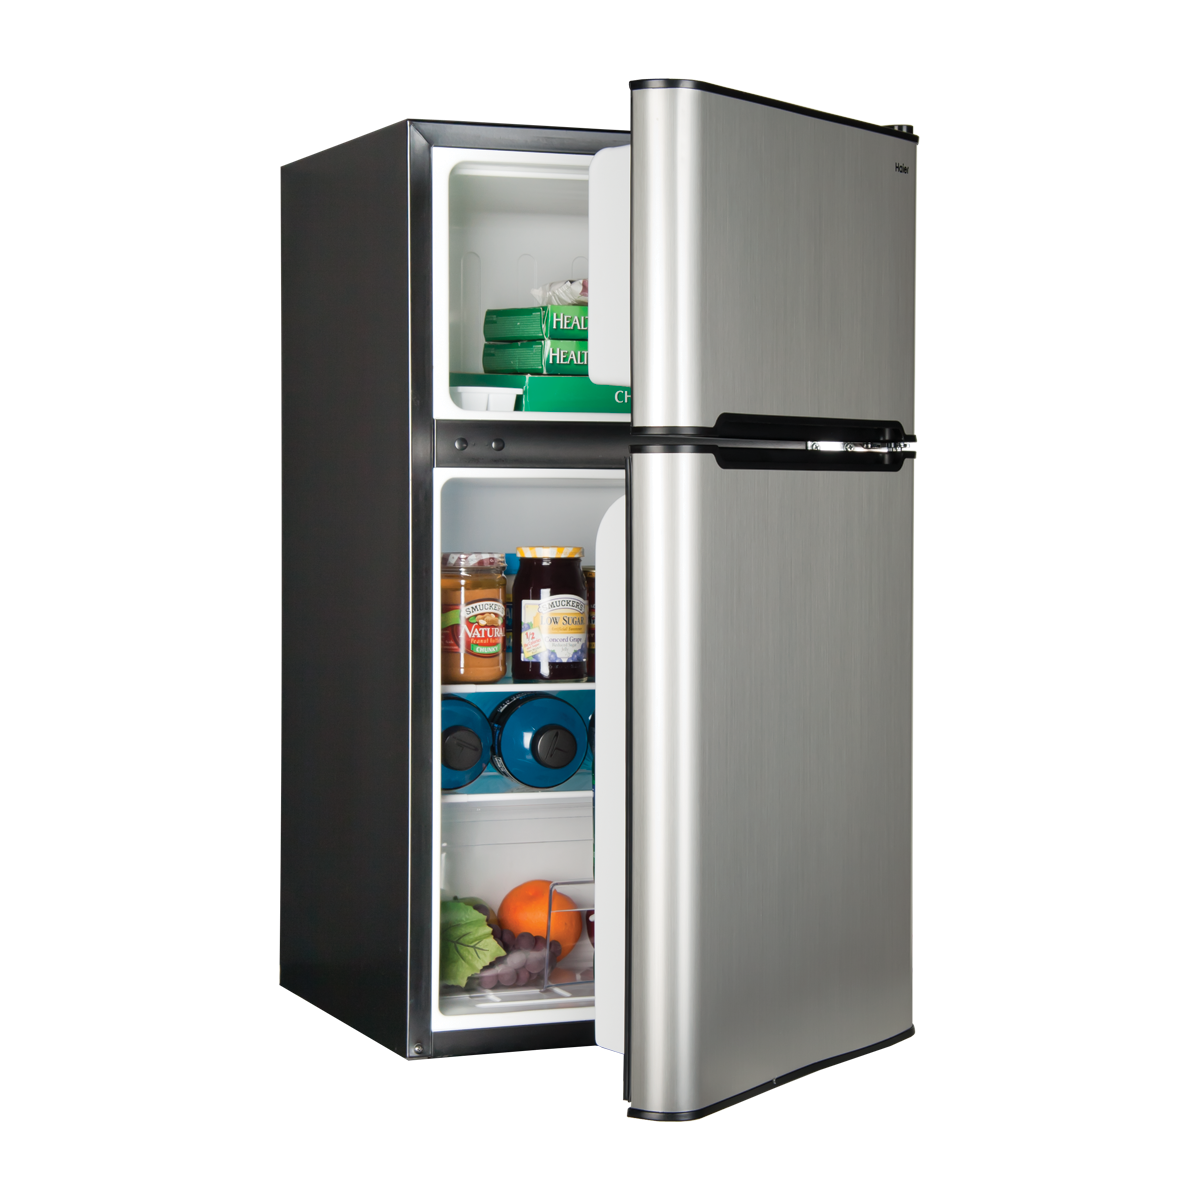 Fridge hd png transparent. Refrigerator clipart double door